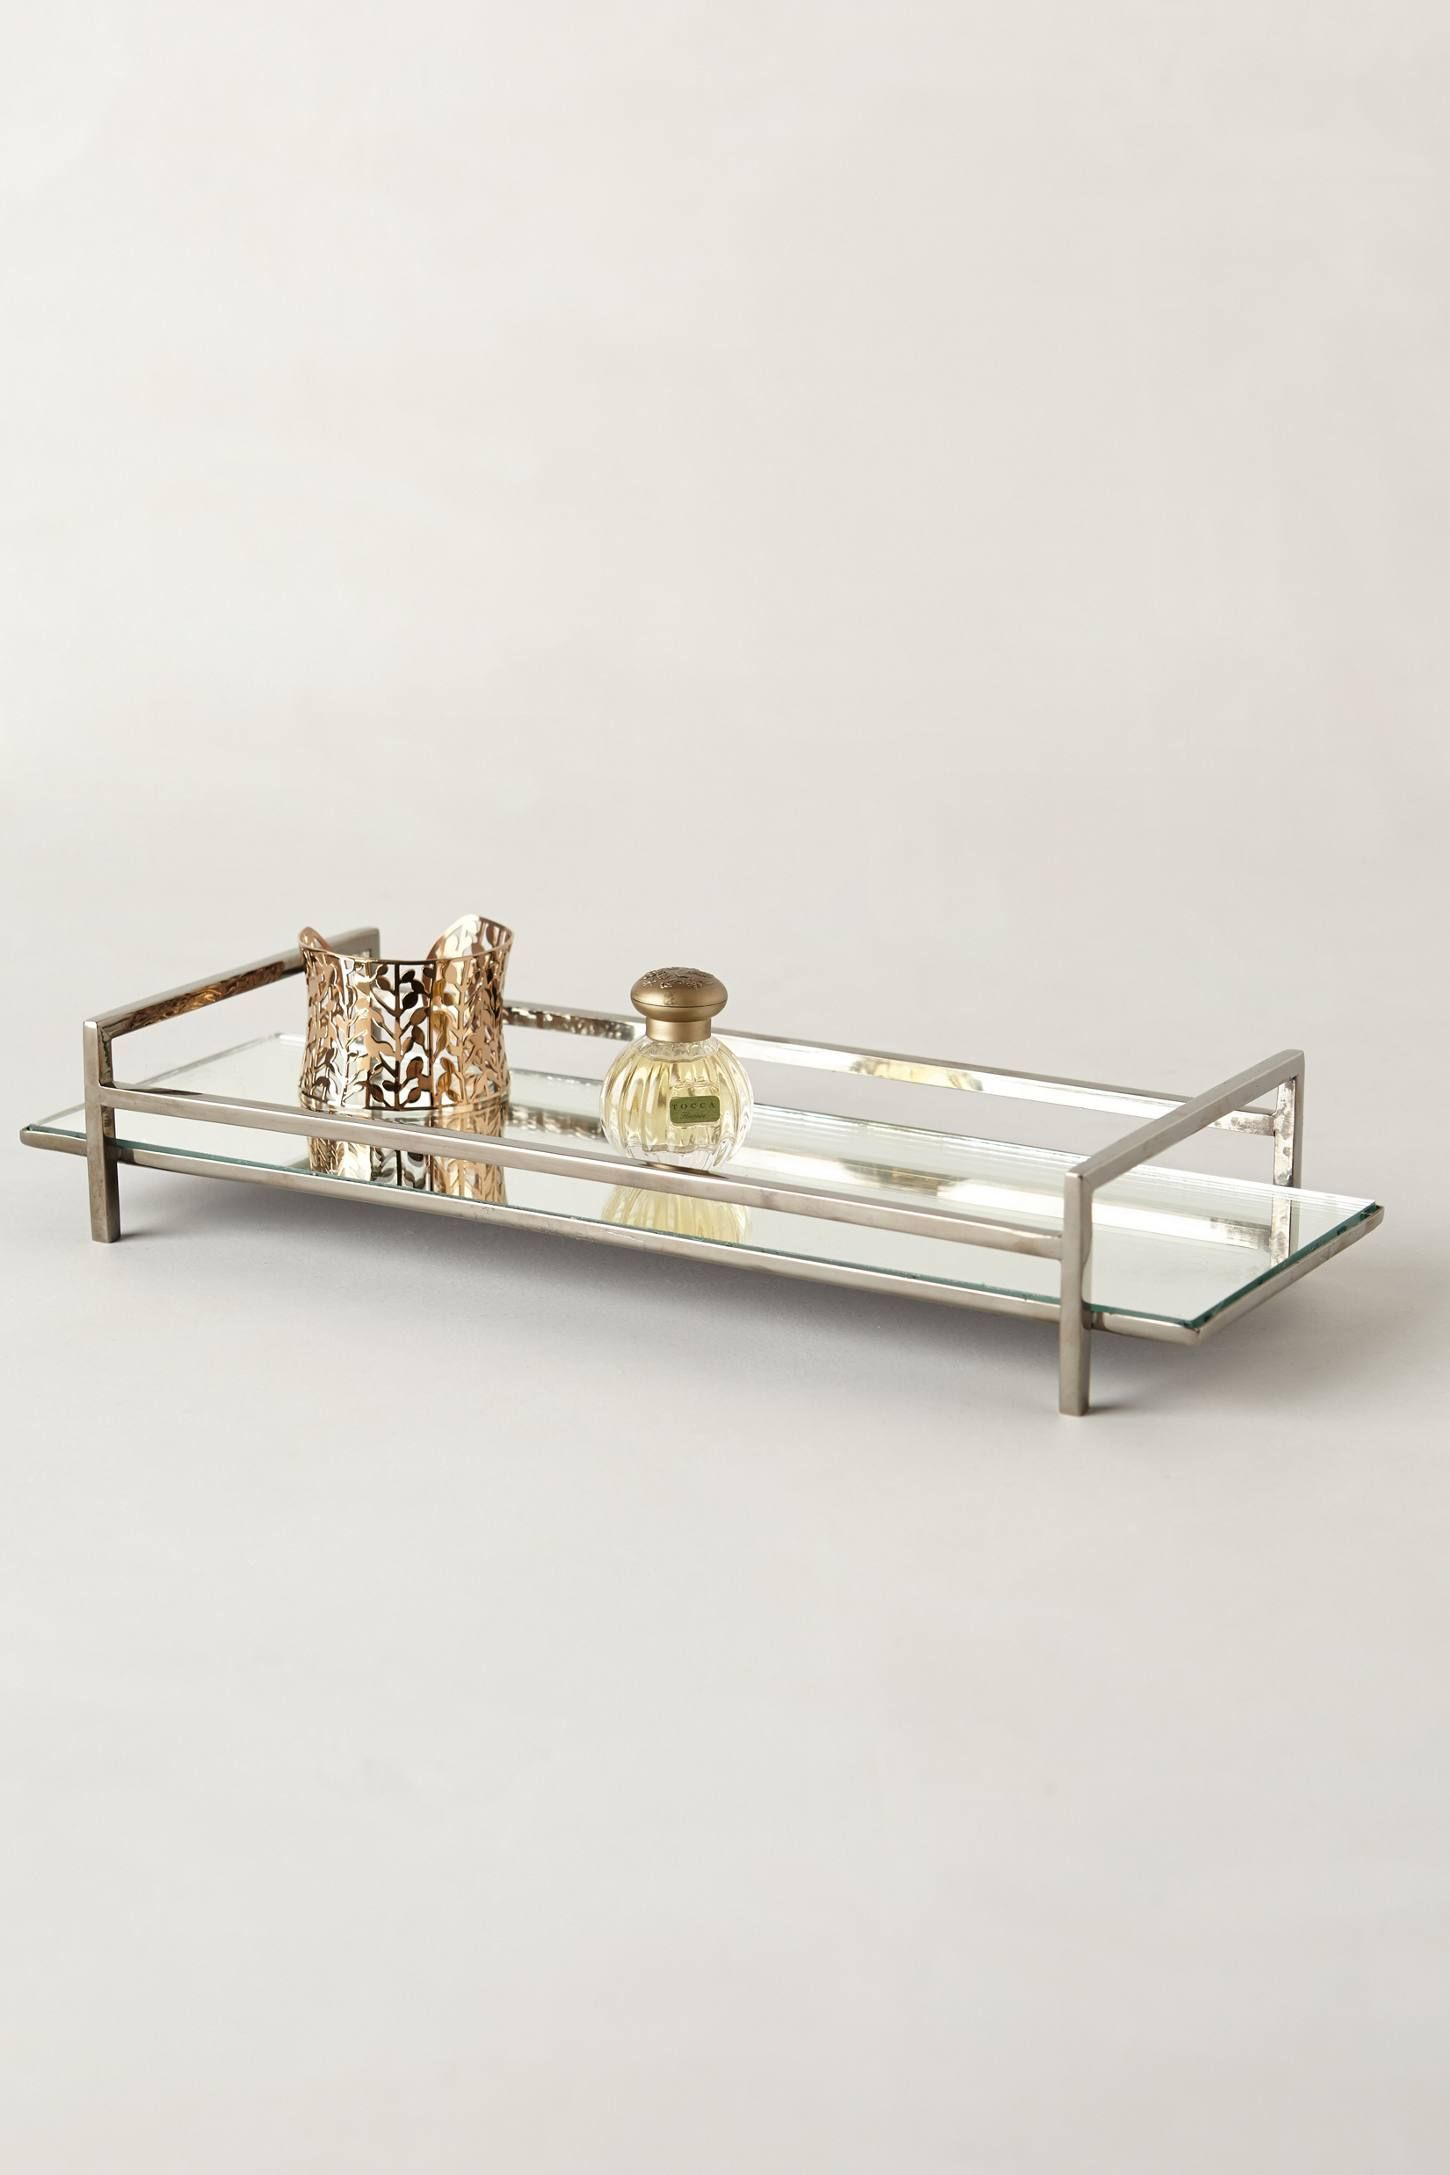 trays styles tray rhlamosquitiaorg elegant glass mirrored for inspiring exciting bathroom trends vanity perfume trayrhblackswandevelopmentcom attachment